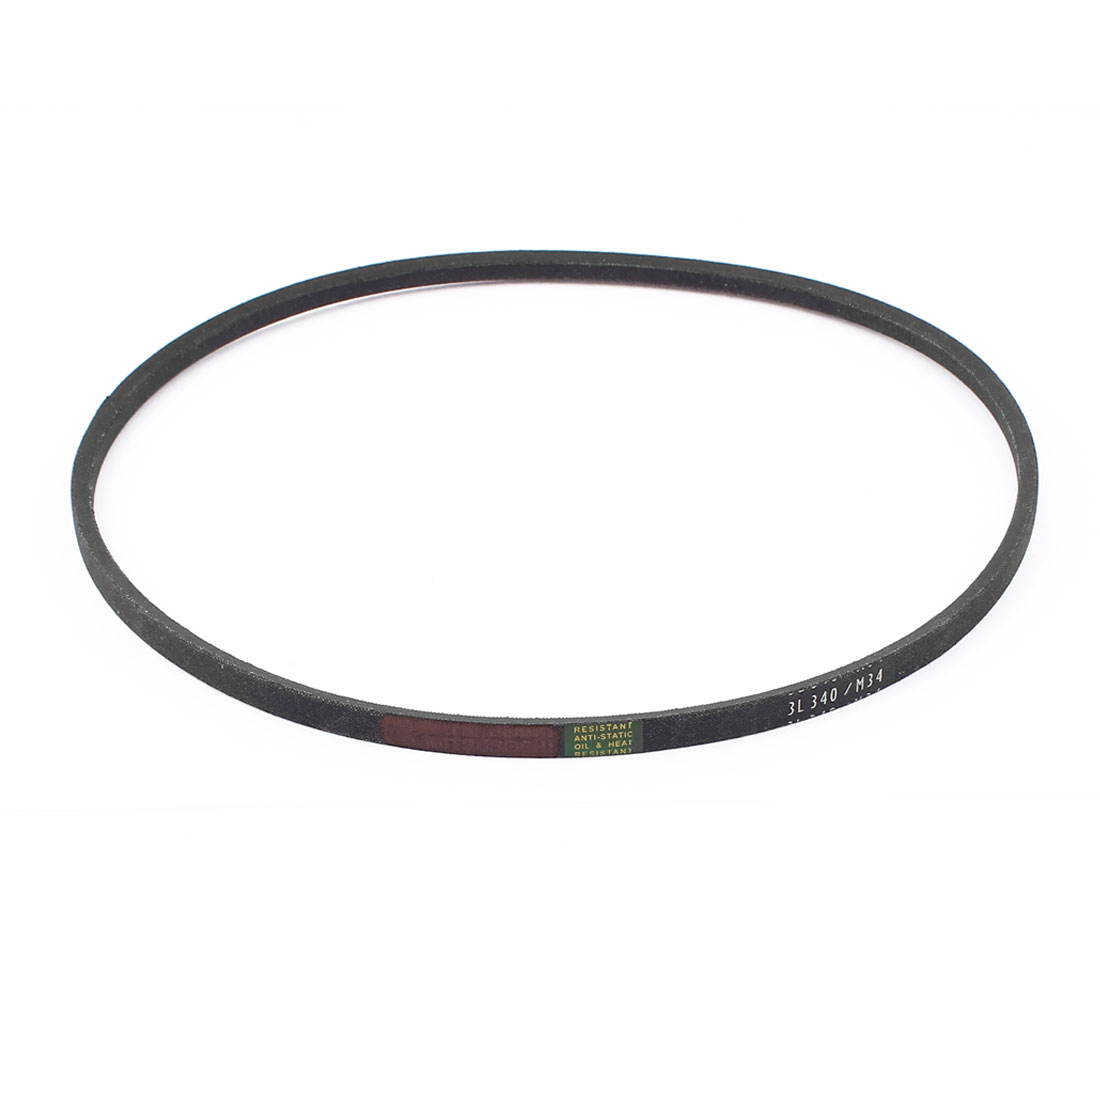 "Industrial Machine Transmission Replacement V Belt M34 3/8"" x 34"""